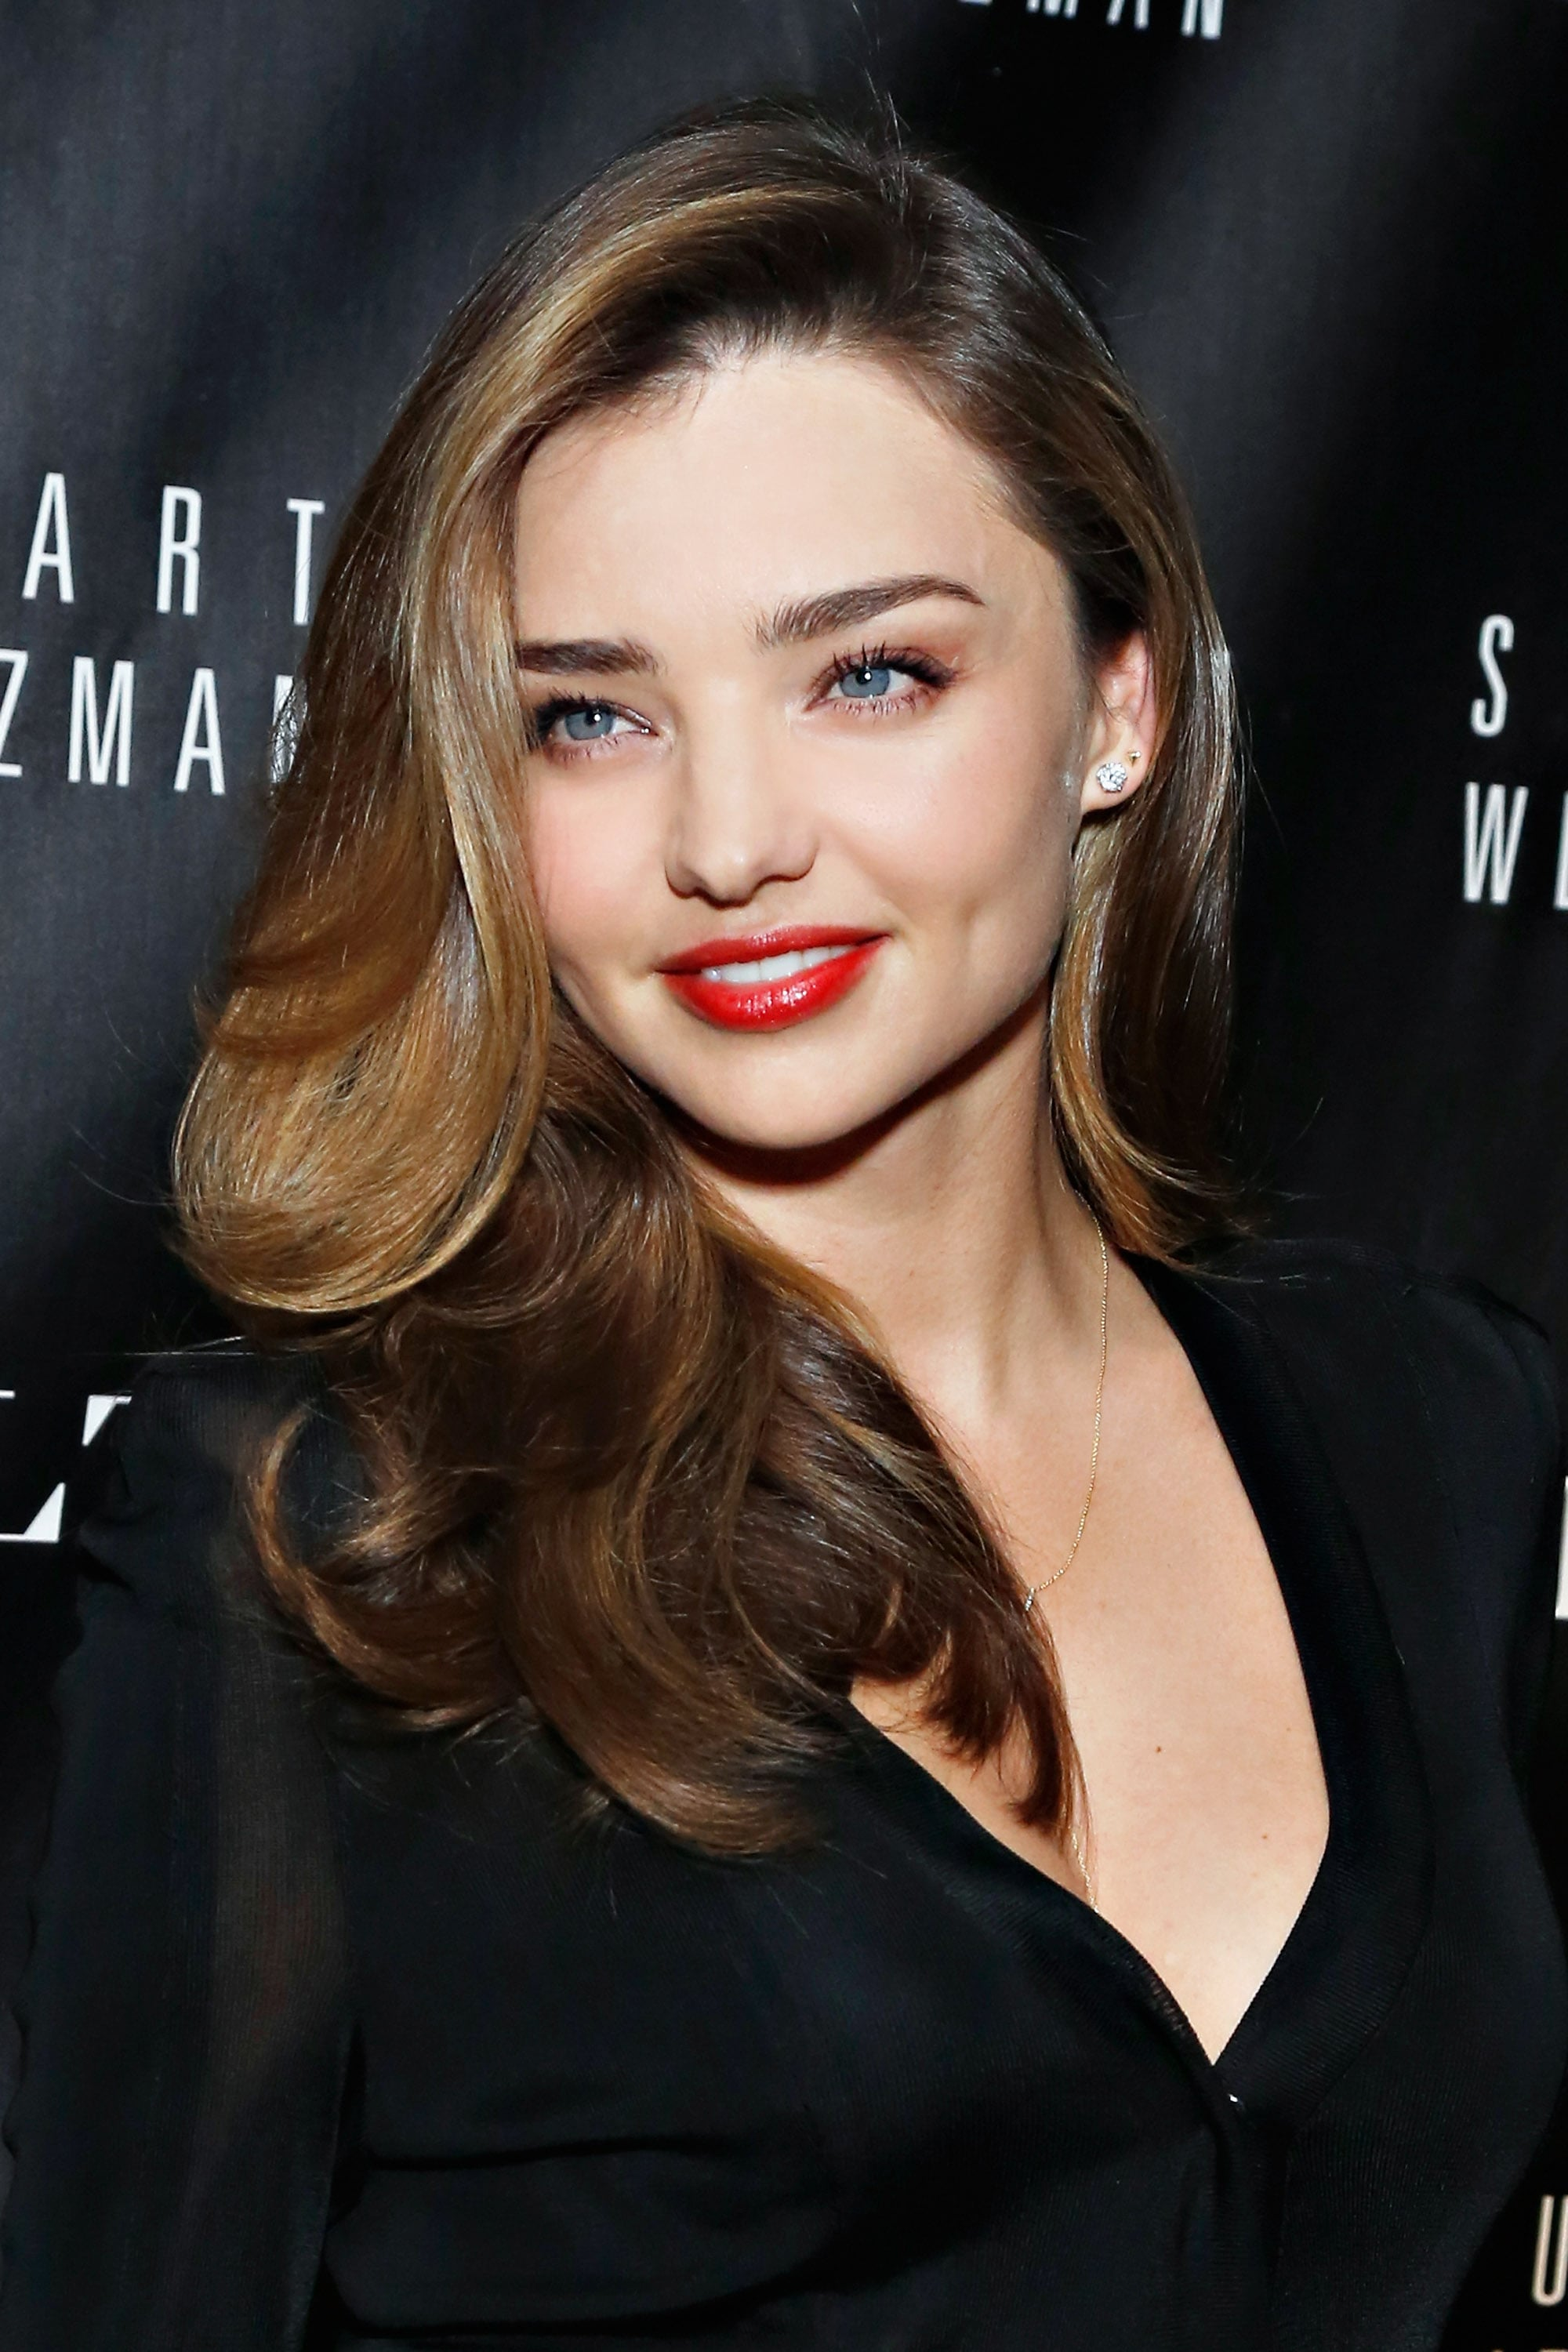 She was all about glamour at a recent event for Gilt and Stuart Weitzman, where she paired bold brows and a glossy red lip with a gorgeously voluminous blowout.